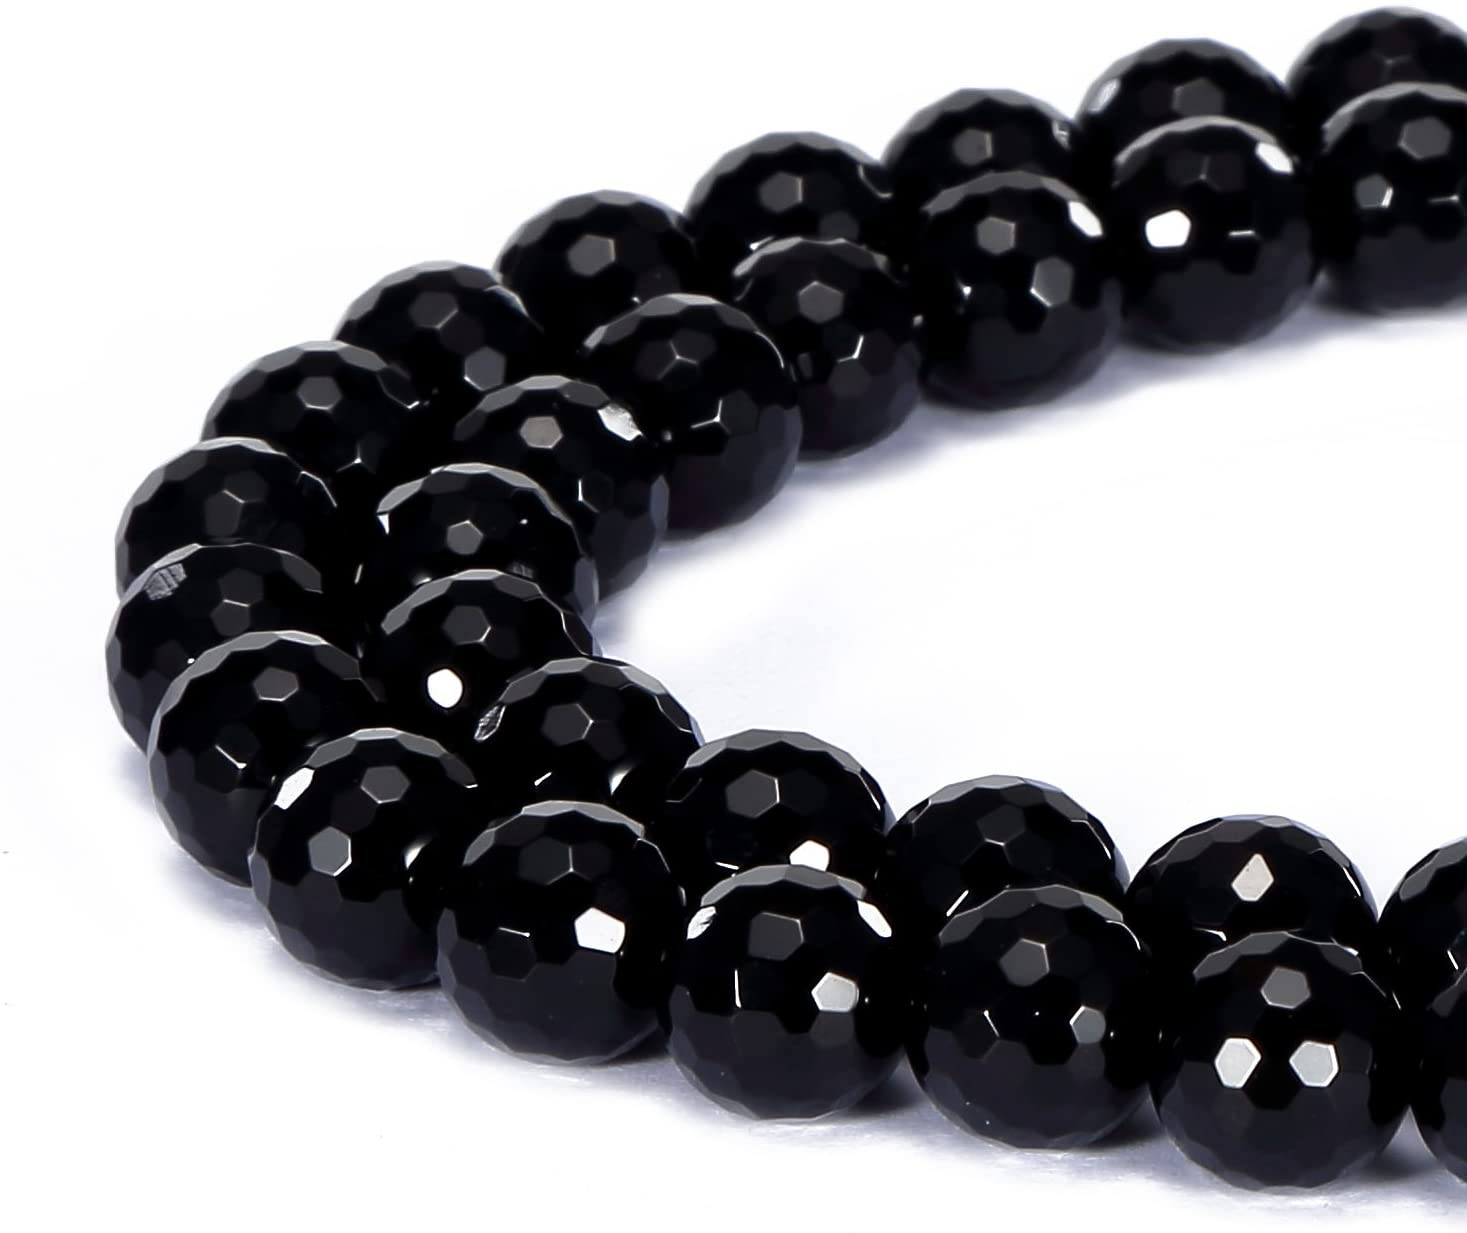 BRCbeads Gorgeous Natural Black Onyx Gemstone Faceted Round Loose Beads 6mm Approxi 15.5 inch 58pcs 1 Strand per Bag for Jewelry Making